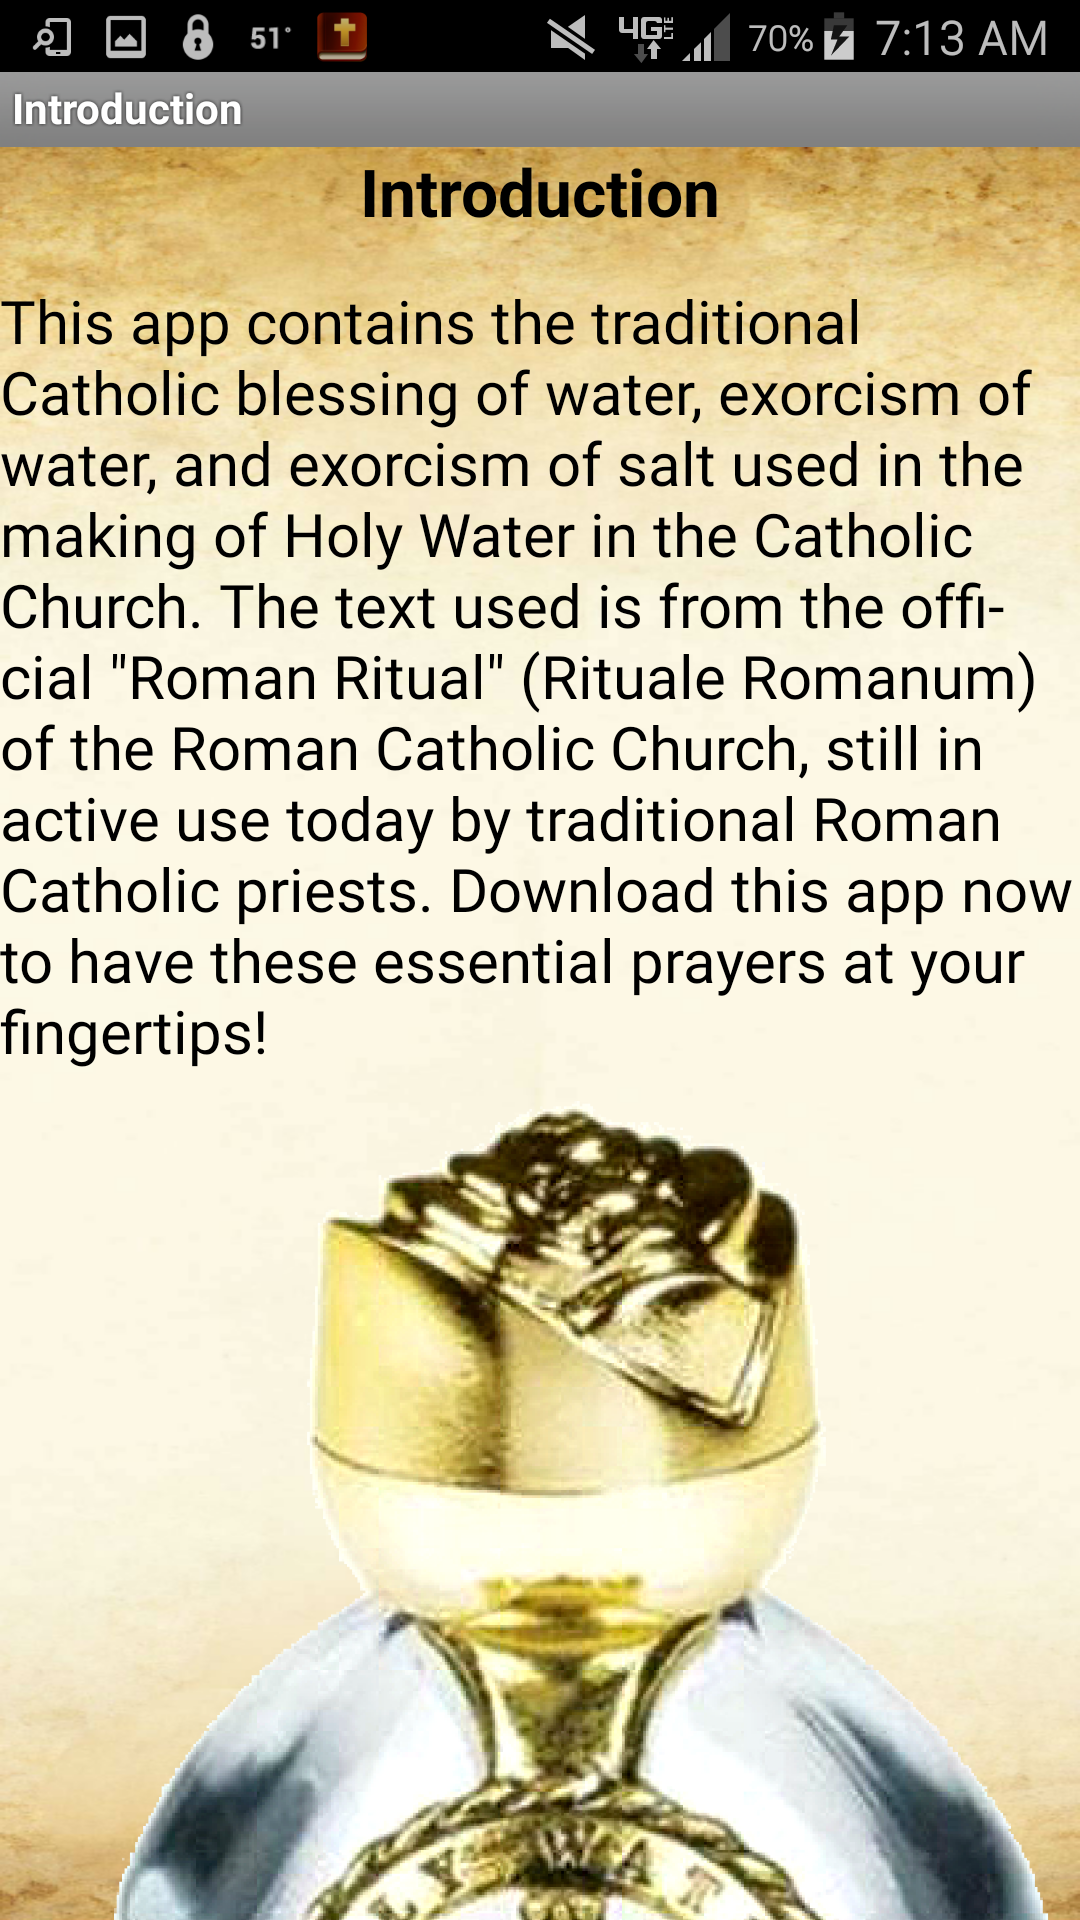 This app contains the traditional Catholic blessing of water